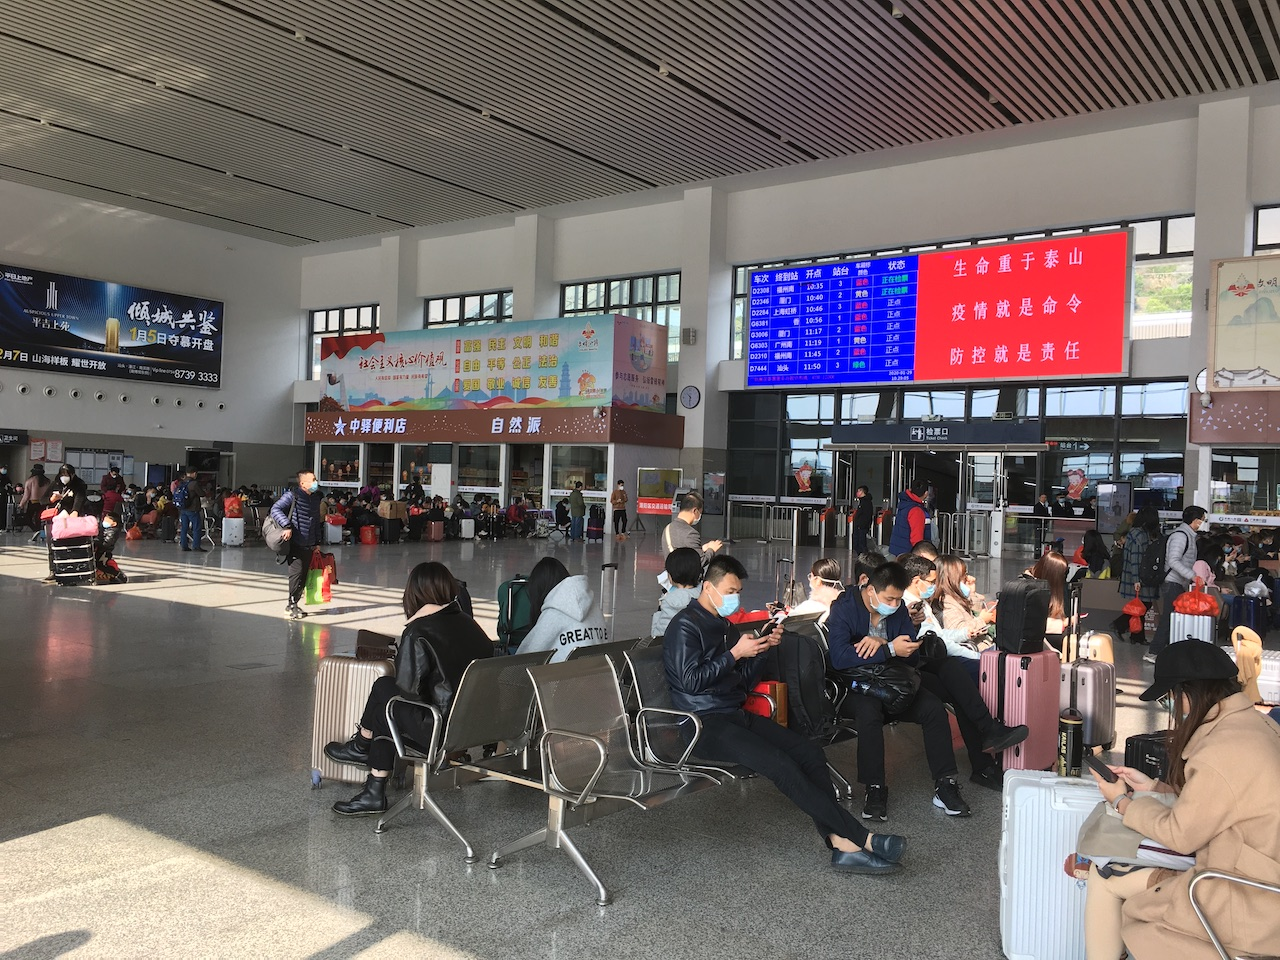 A Chinese International Student Looks Back On 4 Months of Covid-19